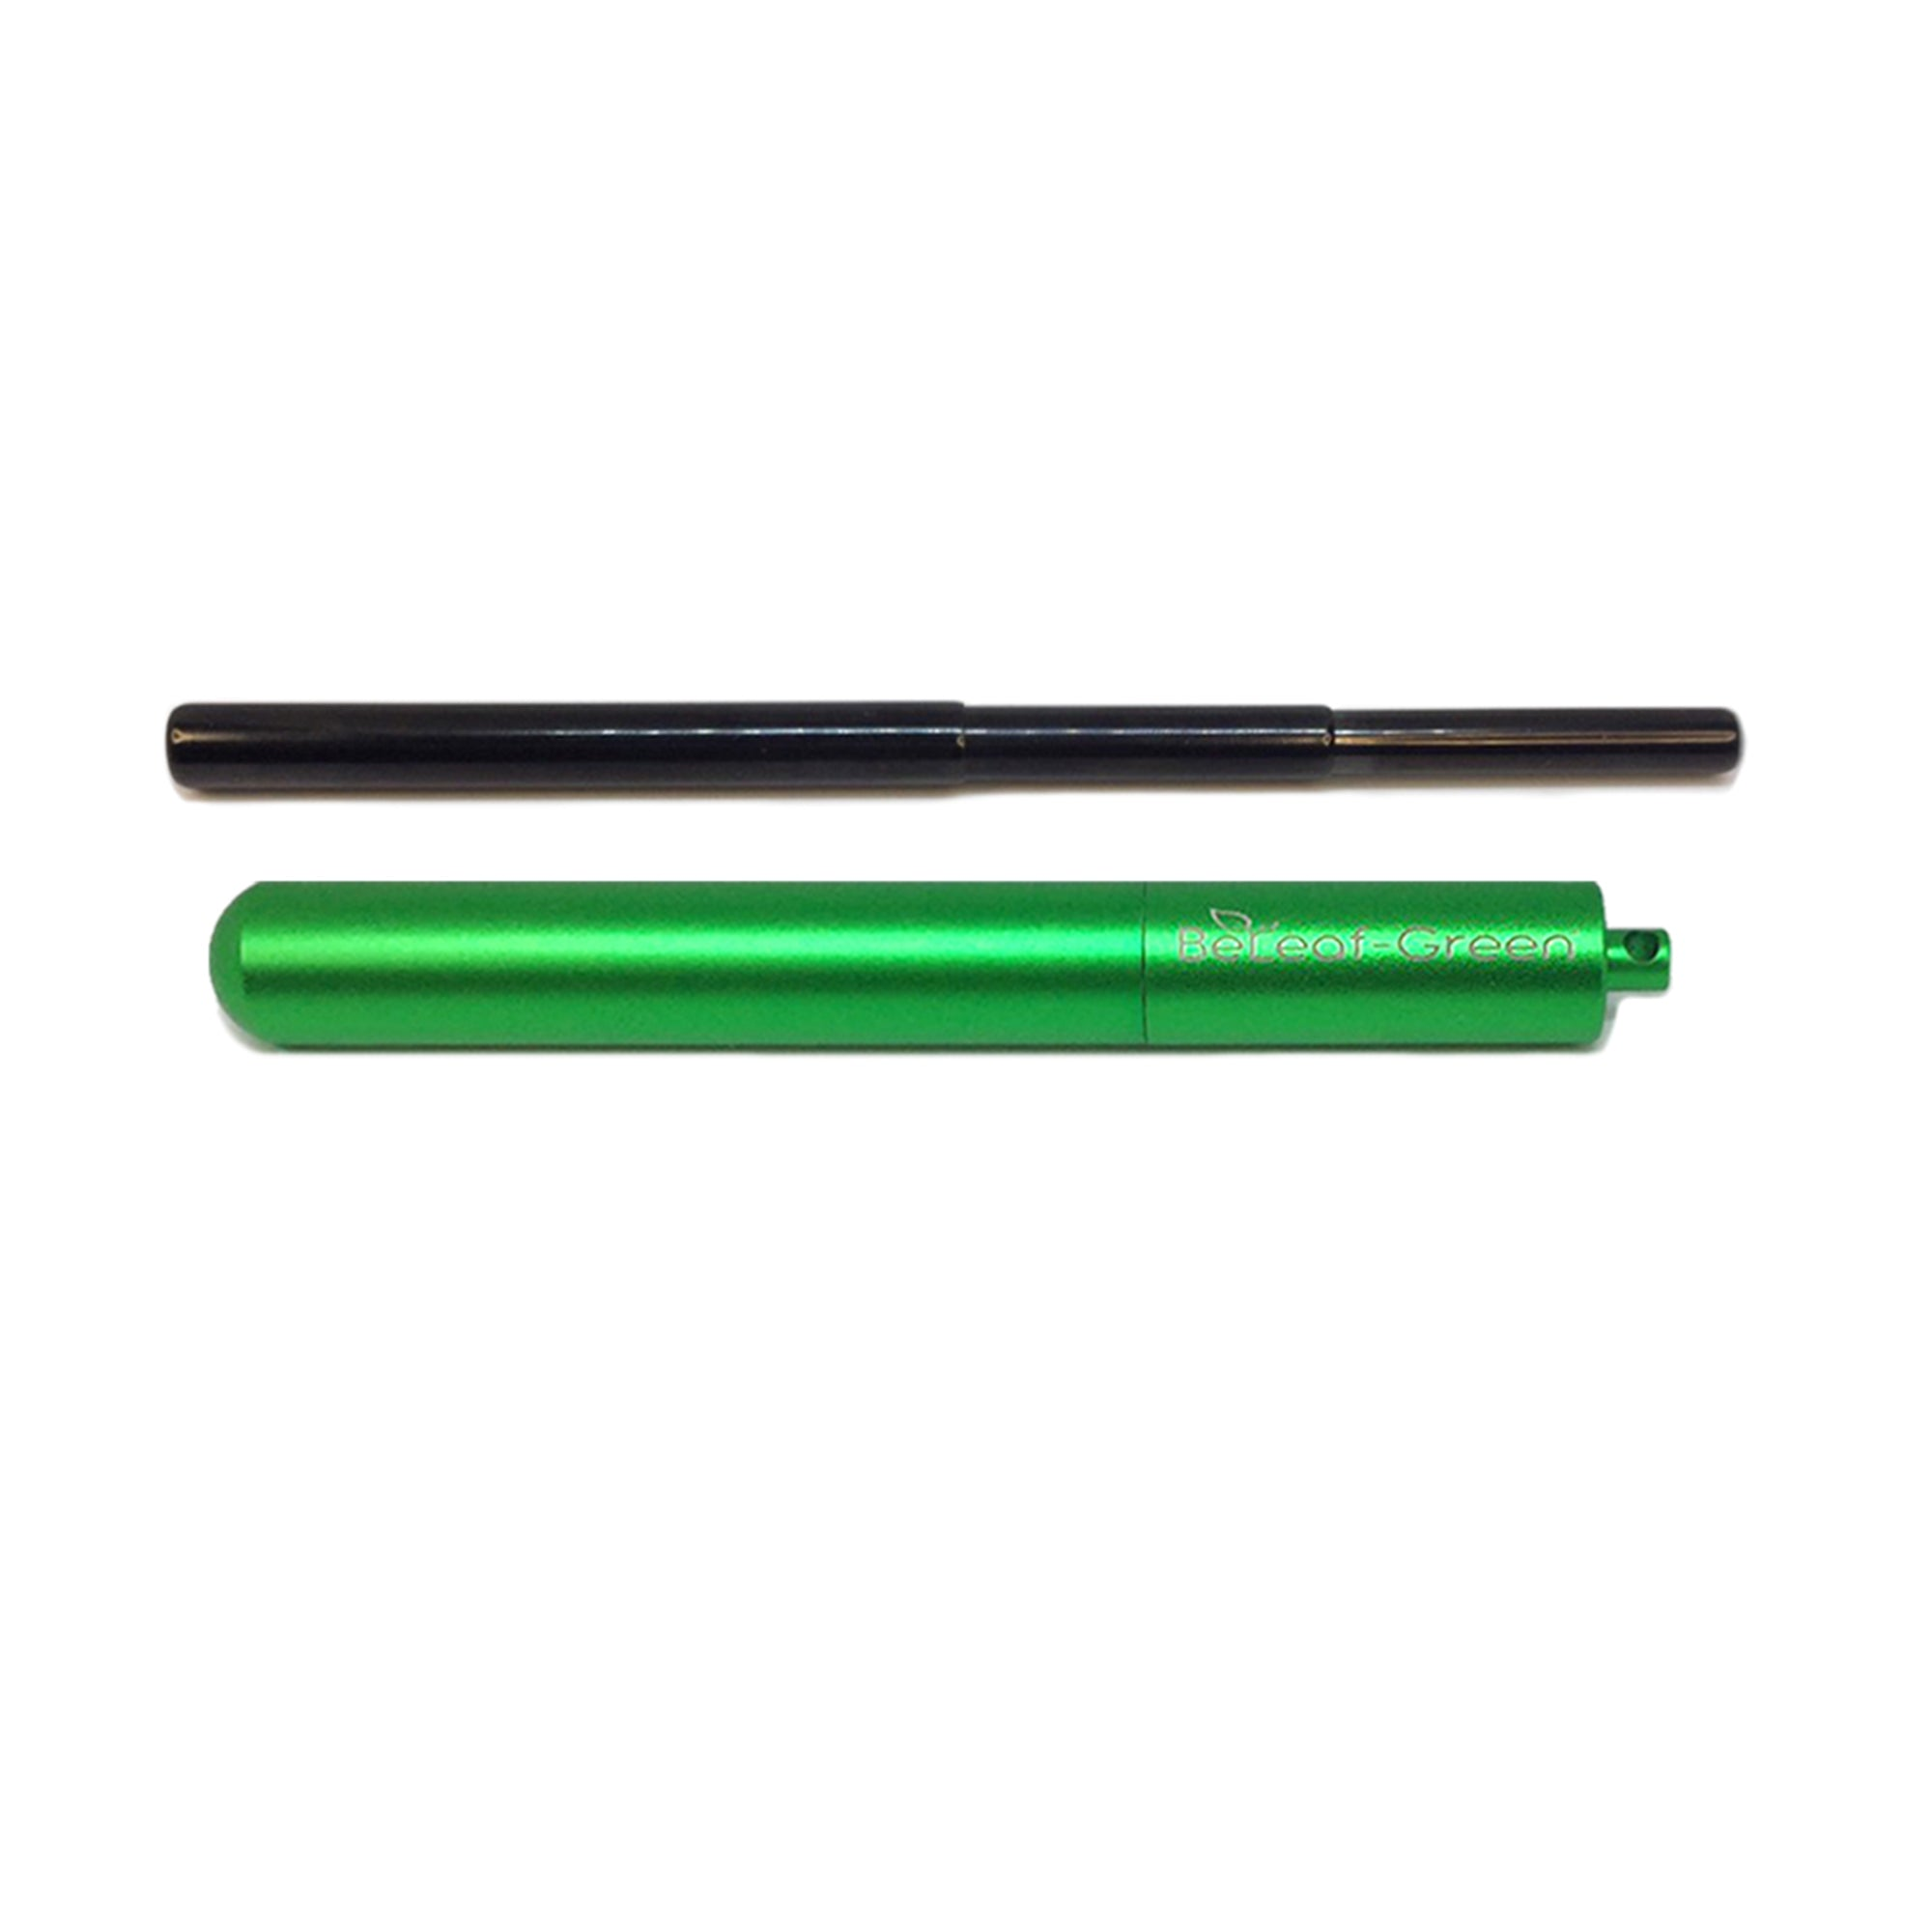 Best Reusable Telescopic Metal Straw Set with case, Green, Customized, Personalized with you Name BeLeaf-Green